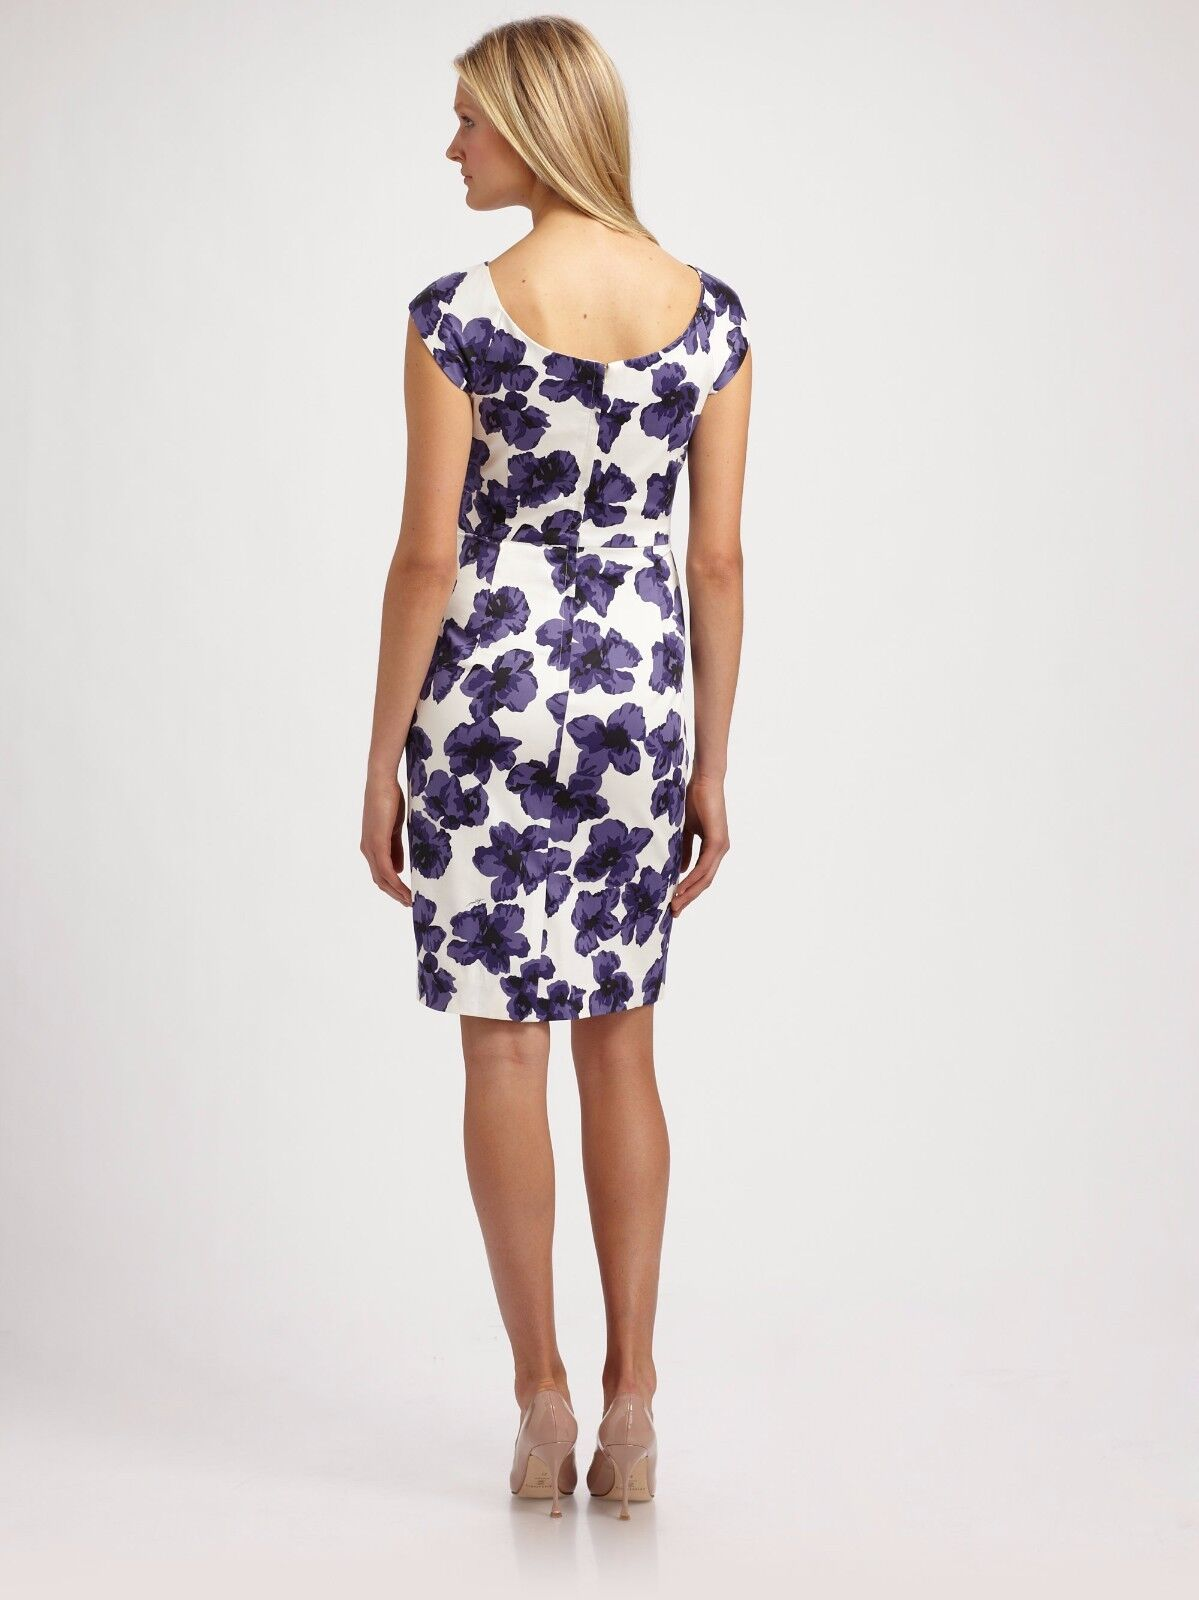 Milly Cattrina Cattrina Cattrina Purple and White Hydrangea Print Dress Size 4, NEW WITH TAGS cc95f5